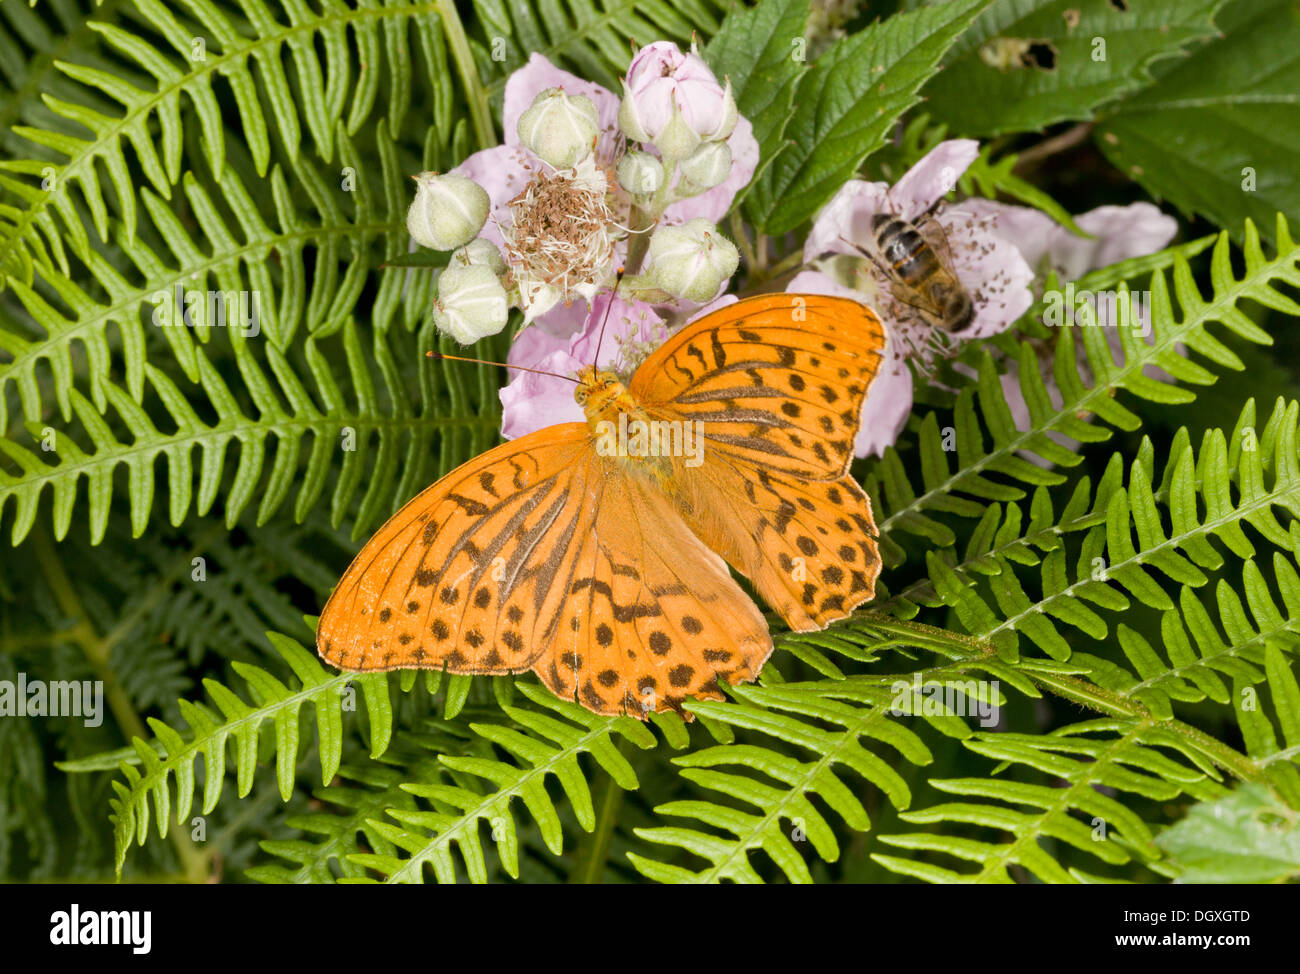 Silver-washed Fritillary butterfly, Argynnis paphia feeding on bramble flowers. - Stock Image